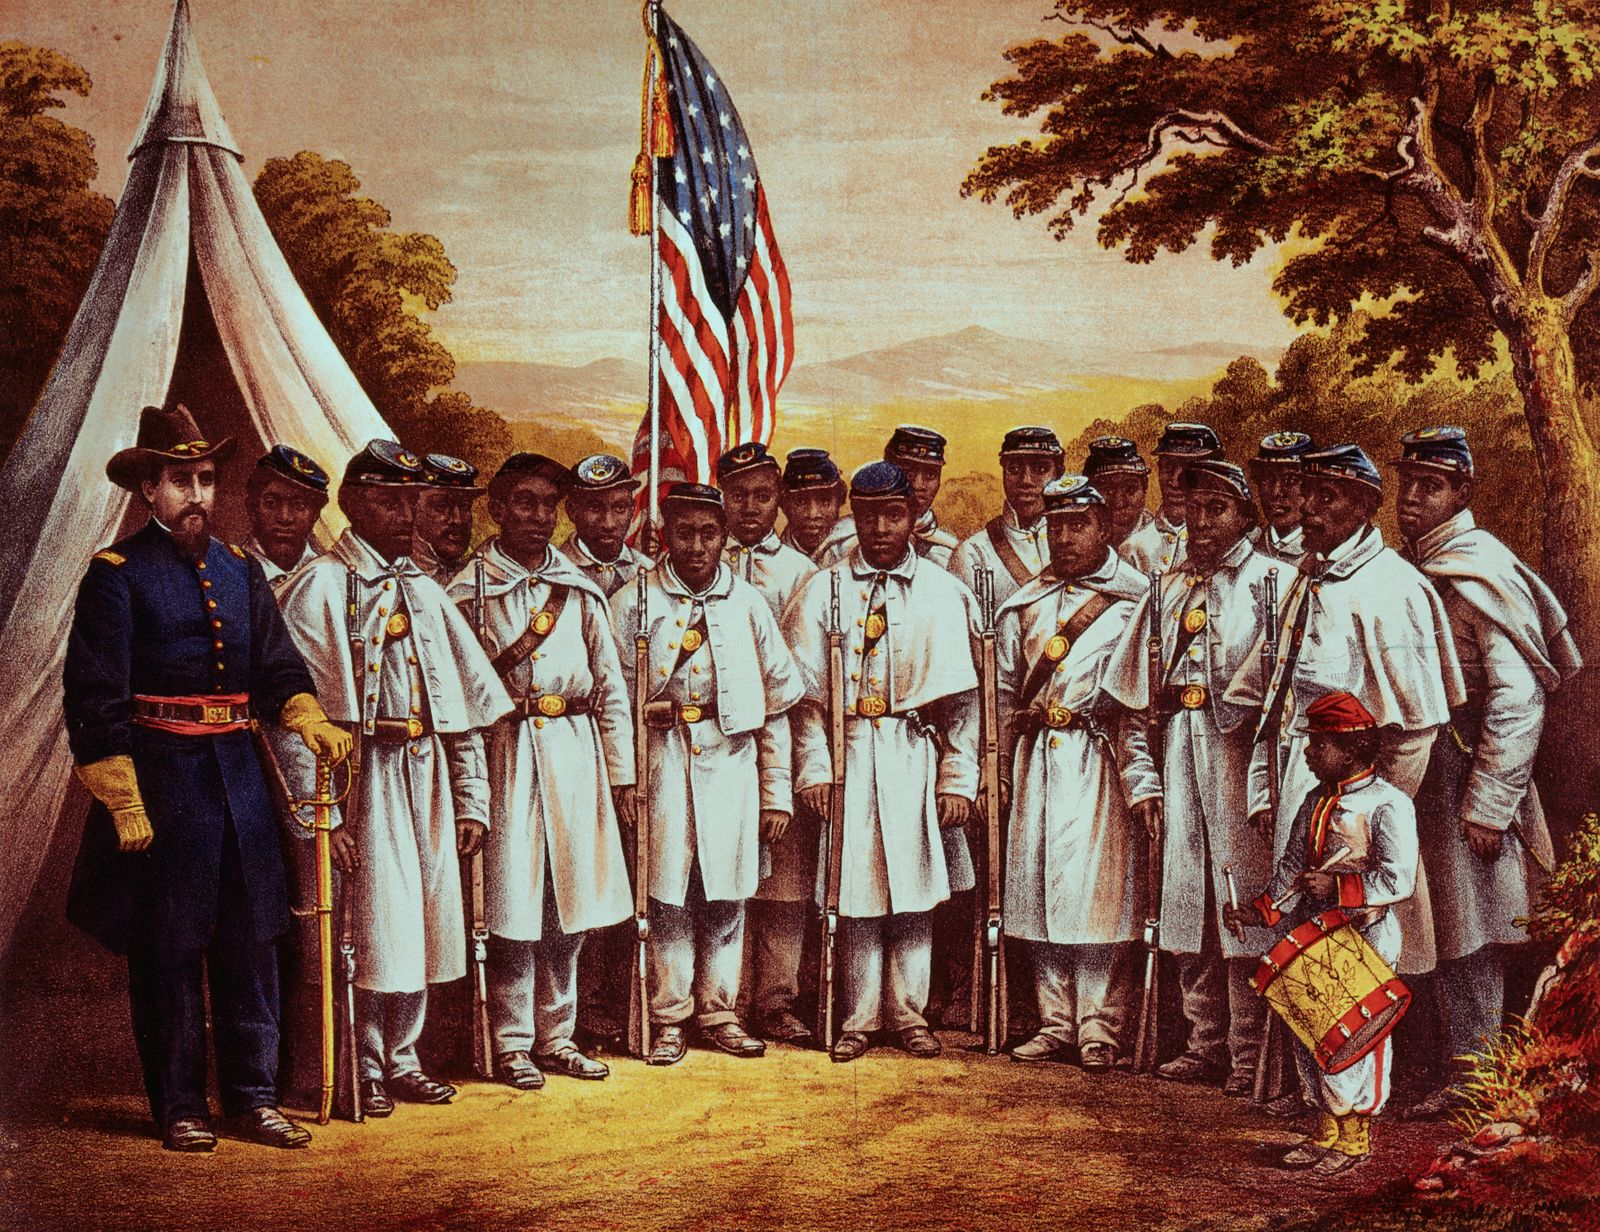 Illustration of Early African American Regiment Posing at Camp